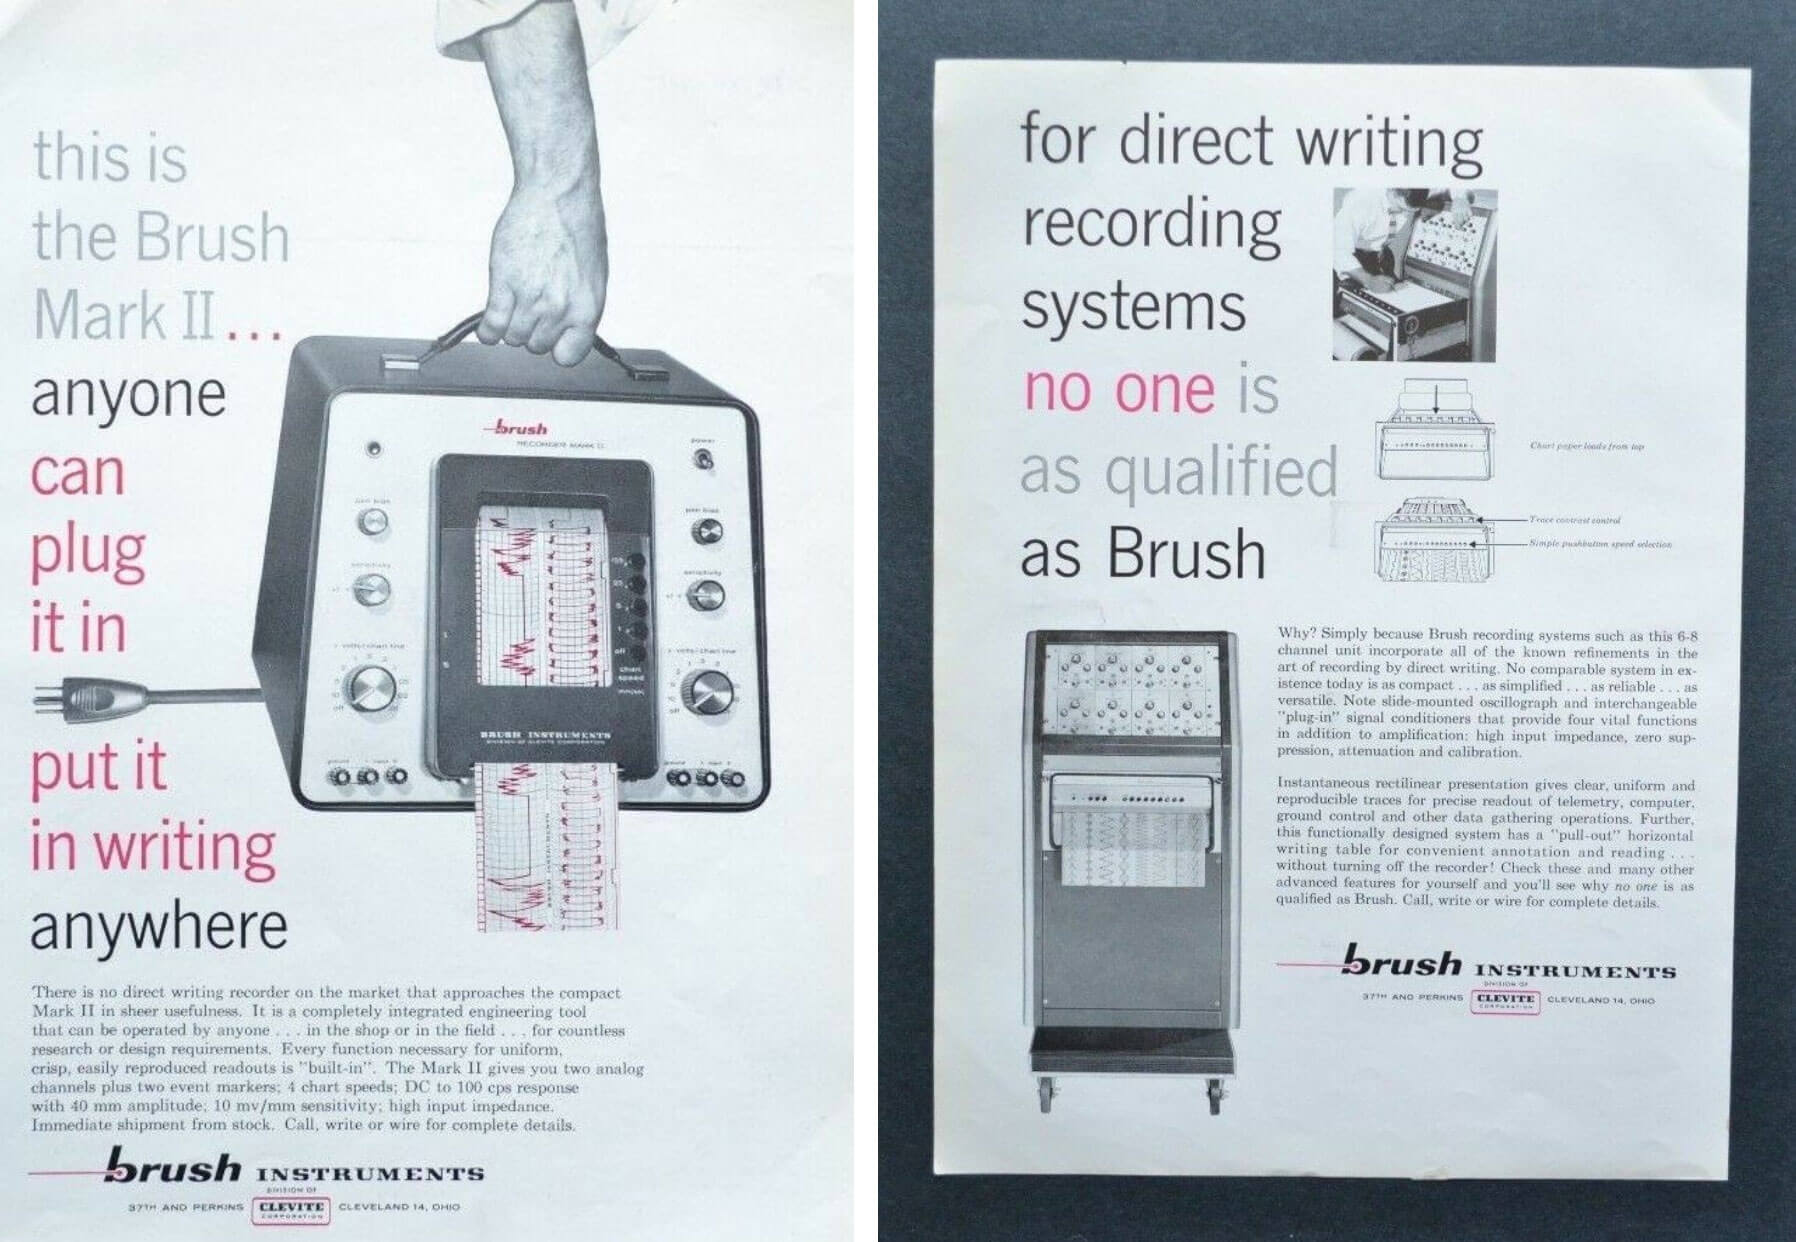 Brush Instruments (later Gould Instruments) advertisements from 1959